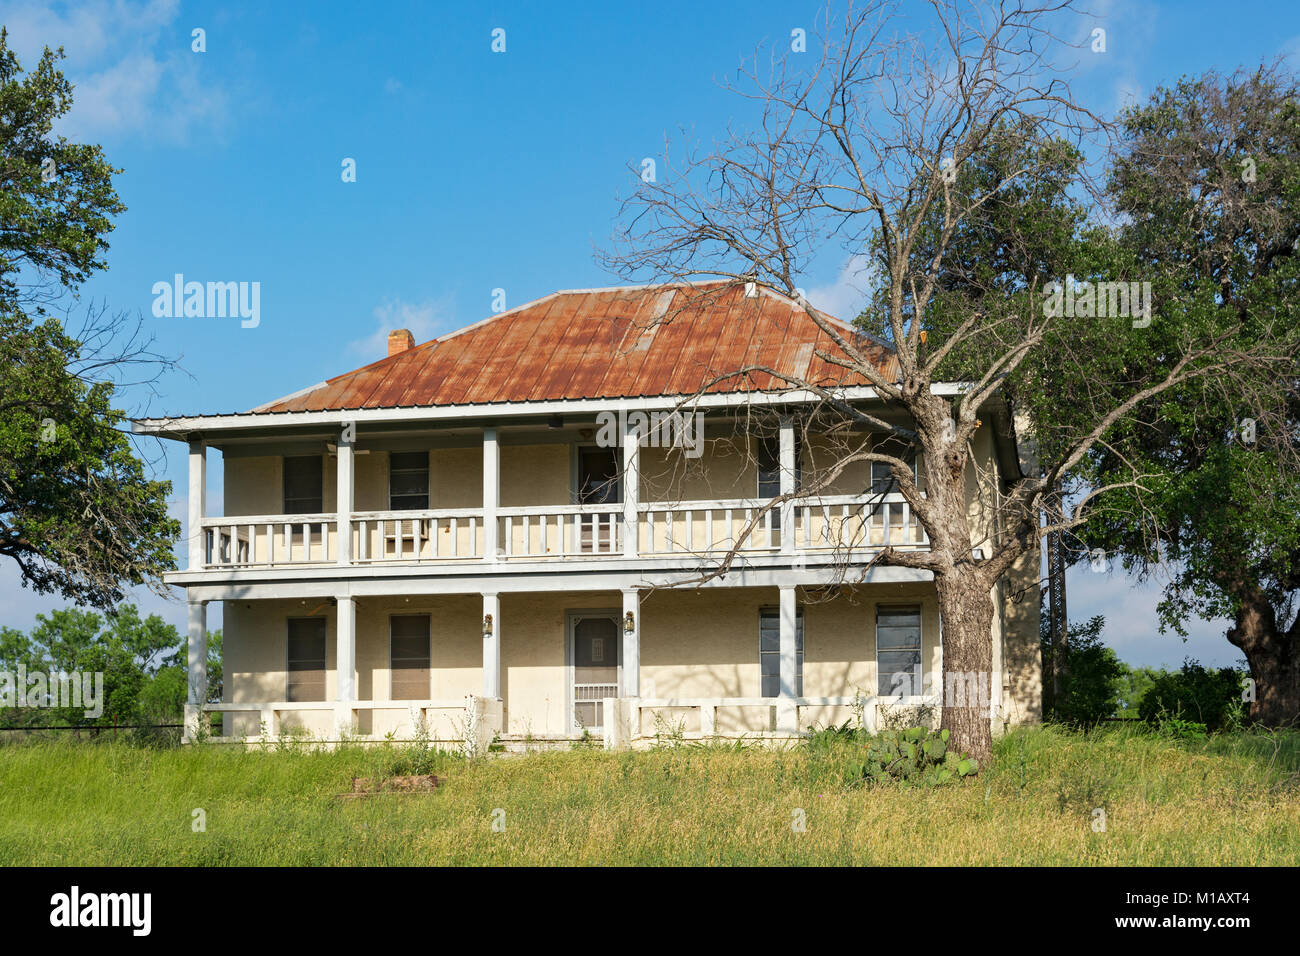 Texas, Hill Country, Llano County, old house on Hwy 16 south of Llano - Stock Image